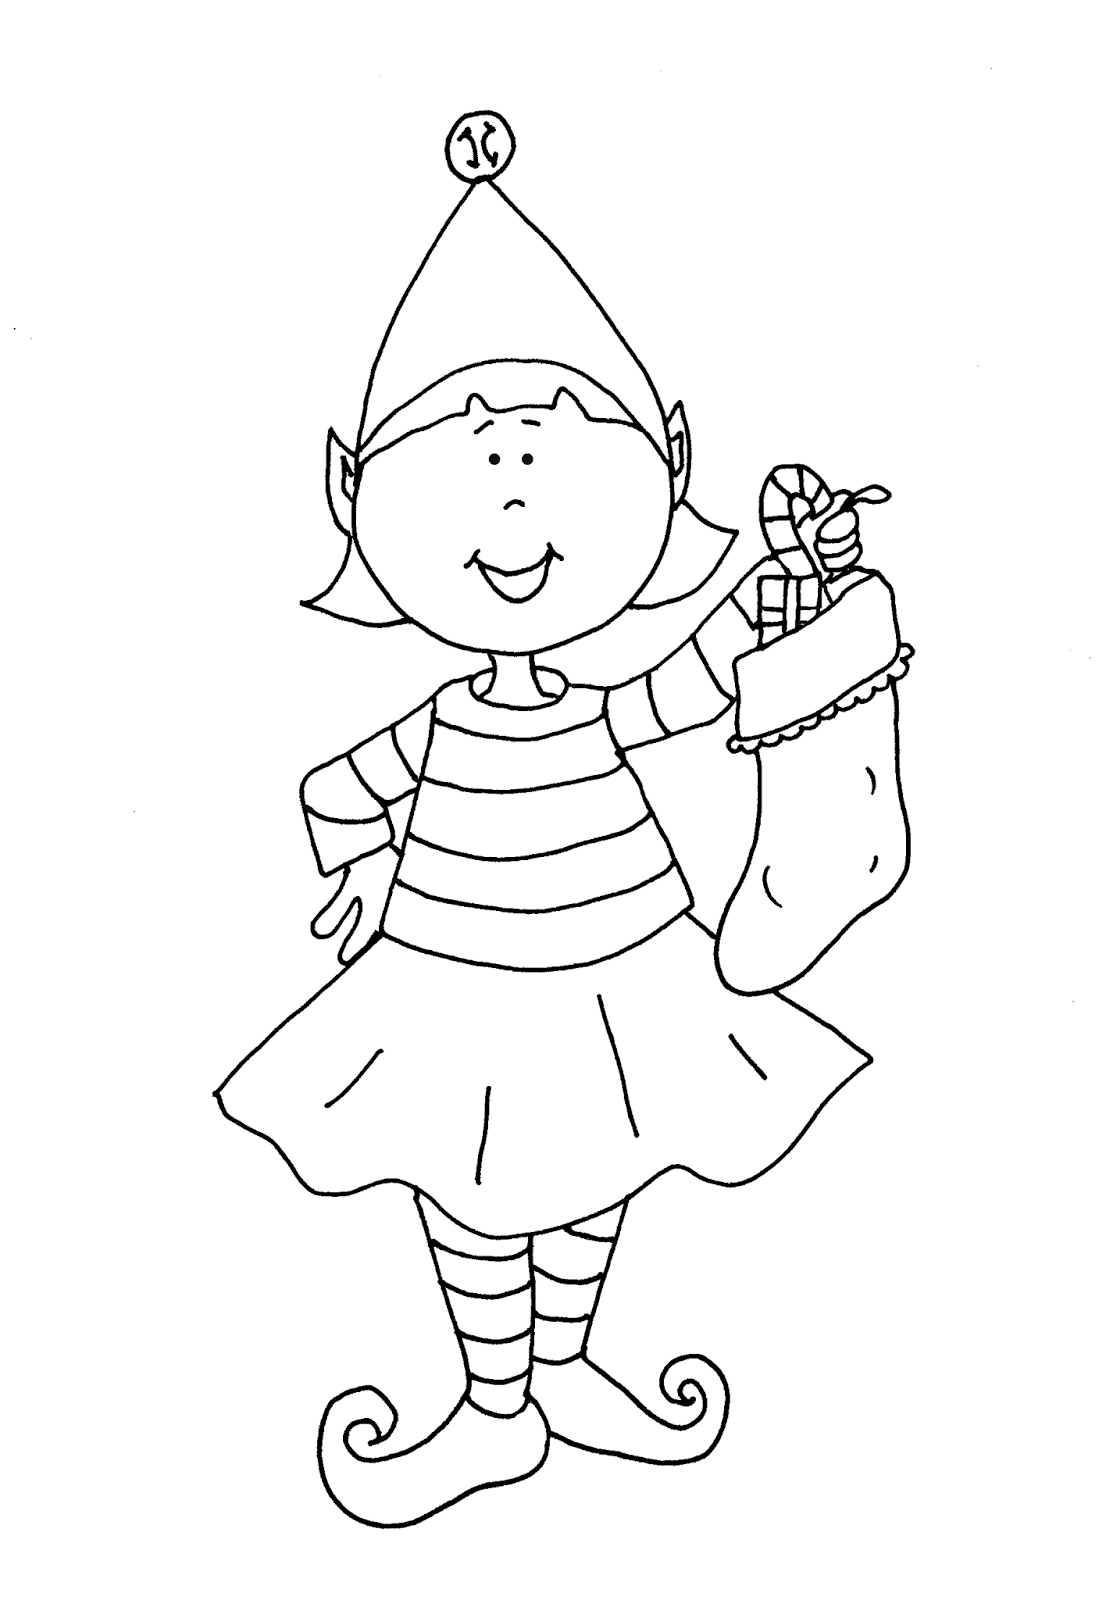 elves coloring pages to printy - photo#24